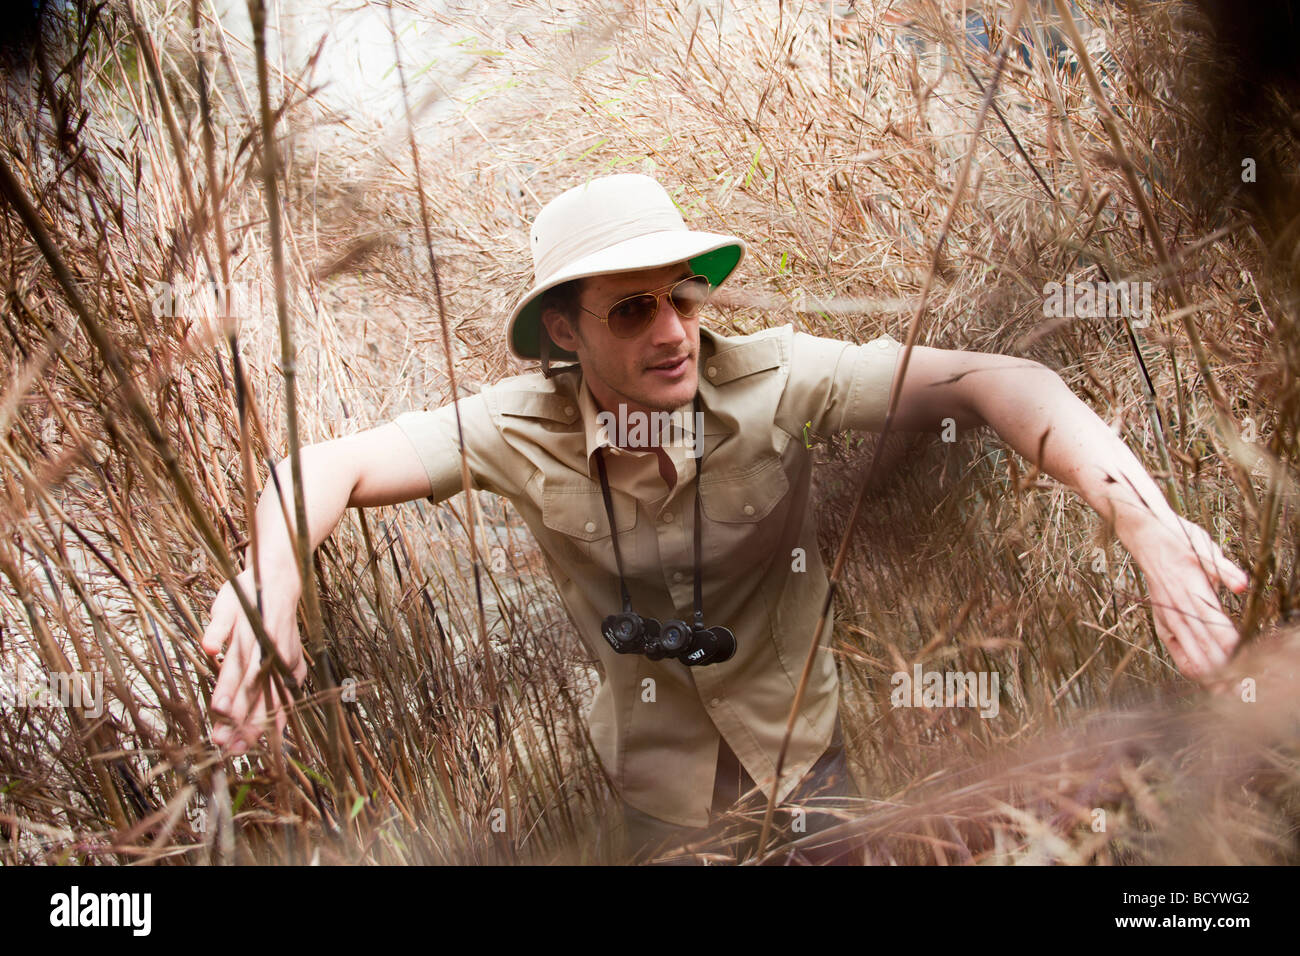 man in jungle outfit wading riverside - Stock Image